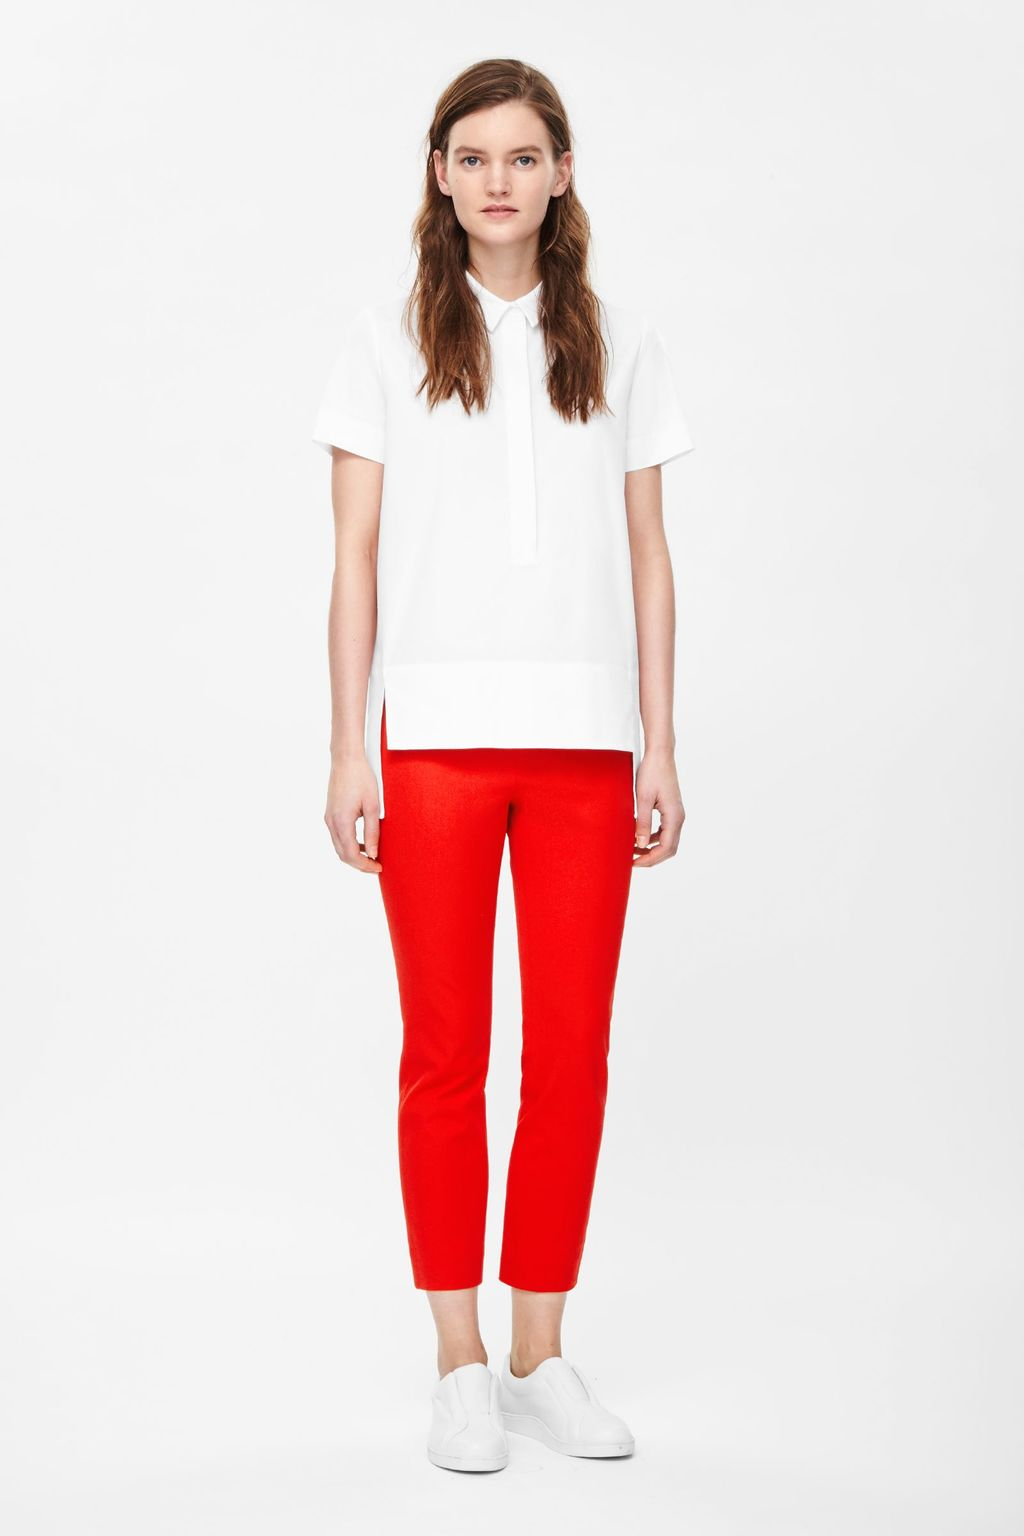 Cropped Side Zip Trousers - pattern: plain; style: capri; waist: mid/regular rise; predominant colour: true red; occasions: casual, creative work; length: calf length; fibres: cotton - stretch; fit: slim leg; pattern type: fabric; texture group: woven light midweight; embellishment: zips; season: s/s 2015; wardrobe: highlight